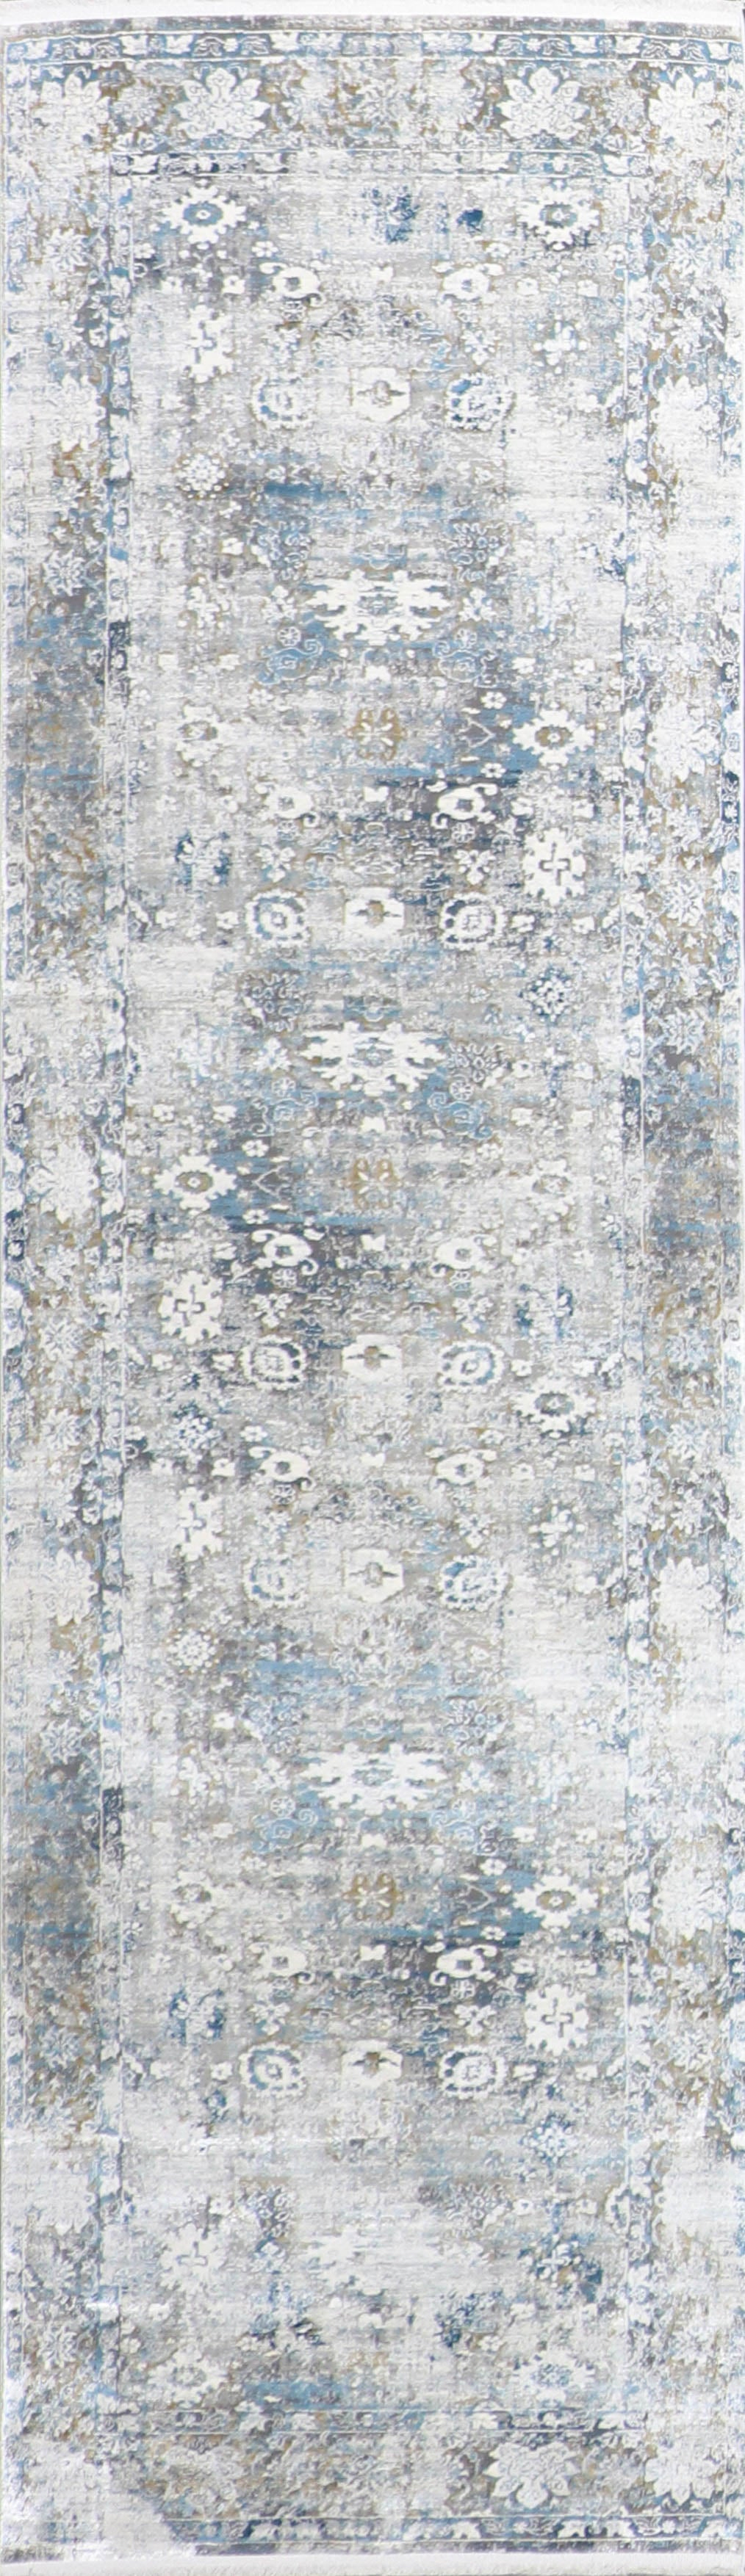 "2'7""x9'10"" Transitional Gray Wool & Silk Hand-Finished Rug"